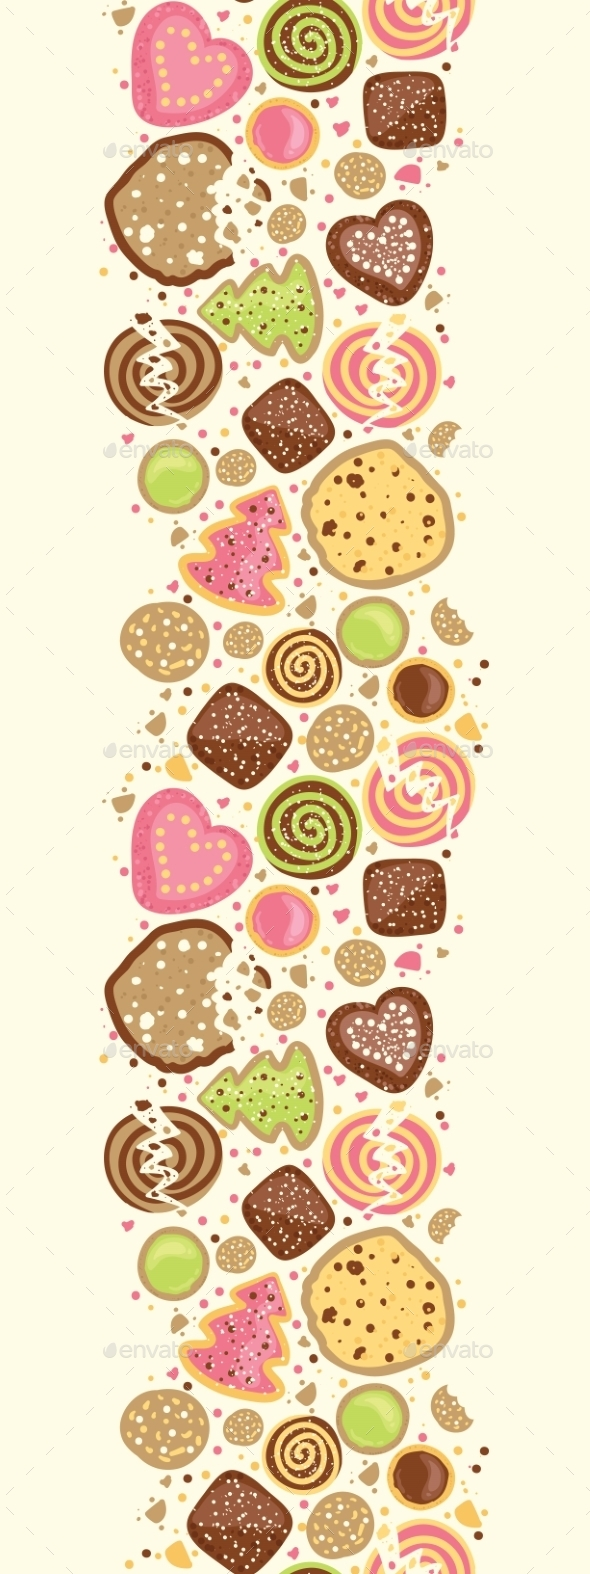 GraphicRiver Cookie Vertical Pattern 10547090